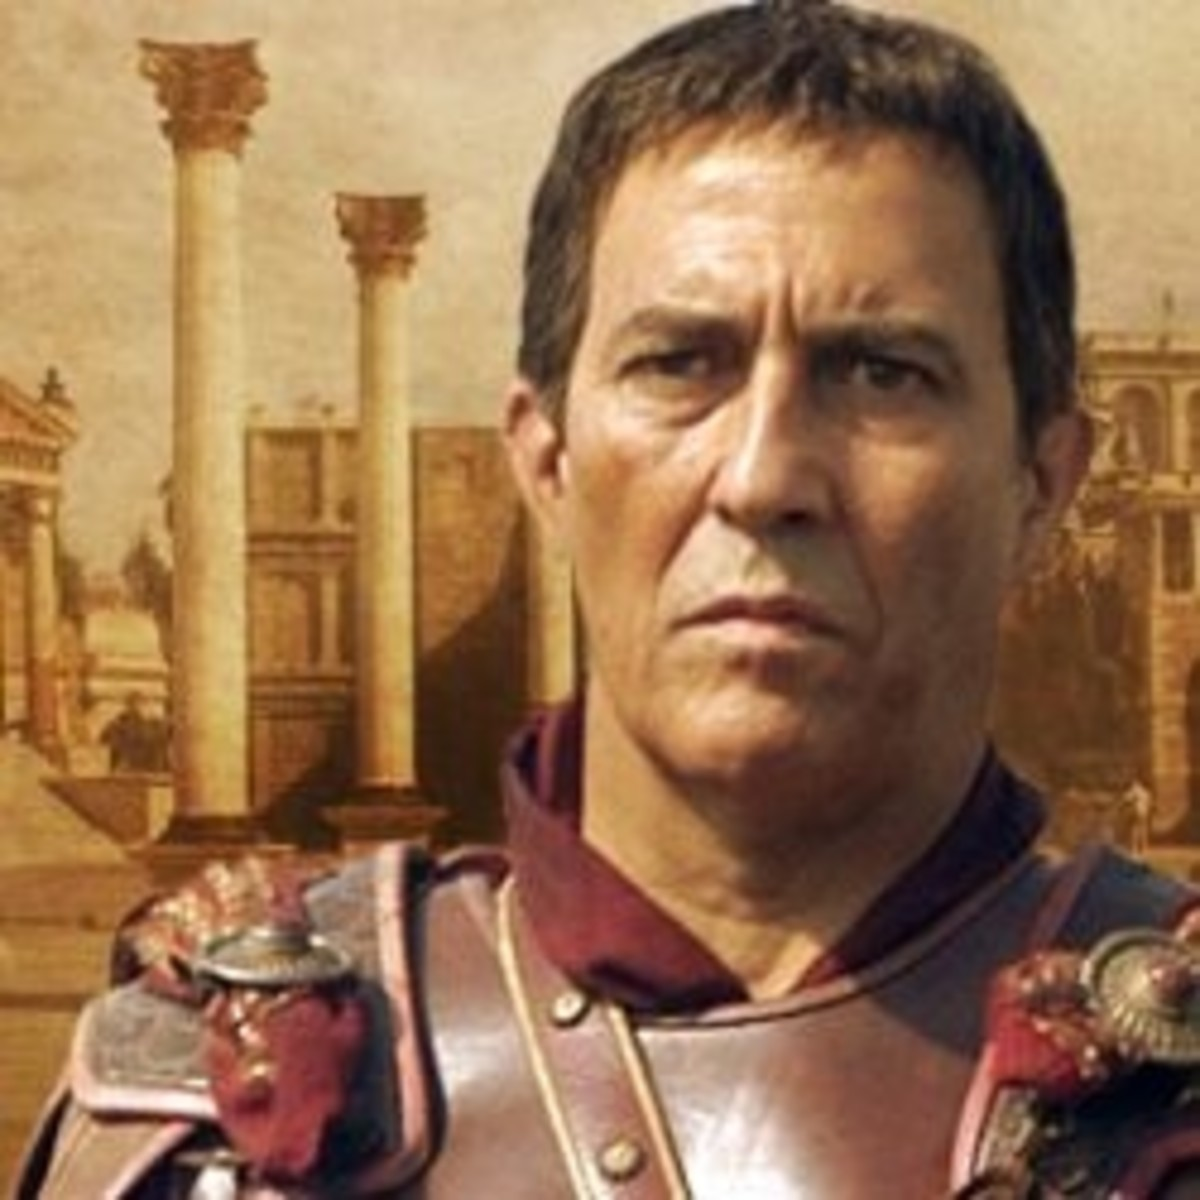 The Ides of March wasn't a happy day for Julius Caesar